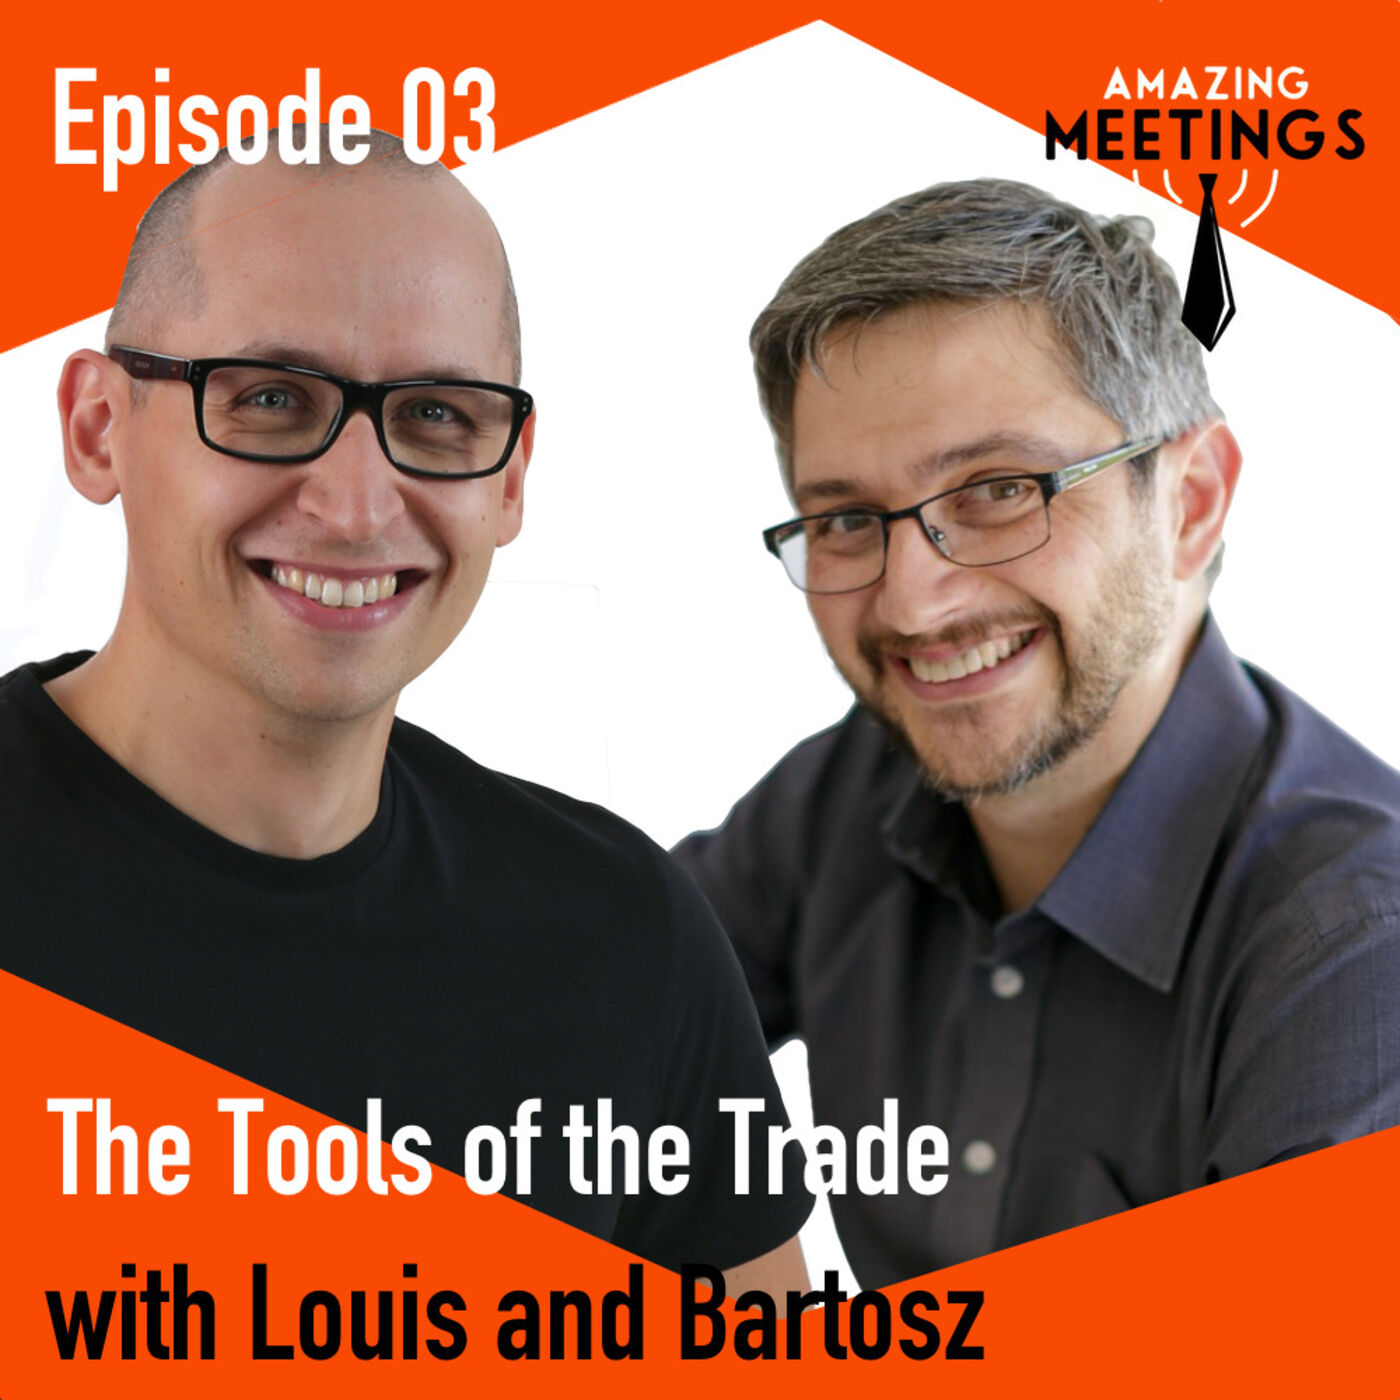 Easy Facilitation Techniques for Everyone - with Louis and Bartosz